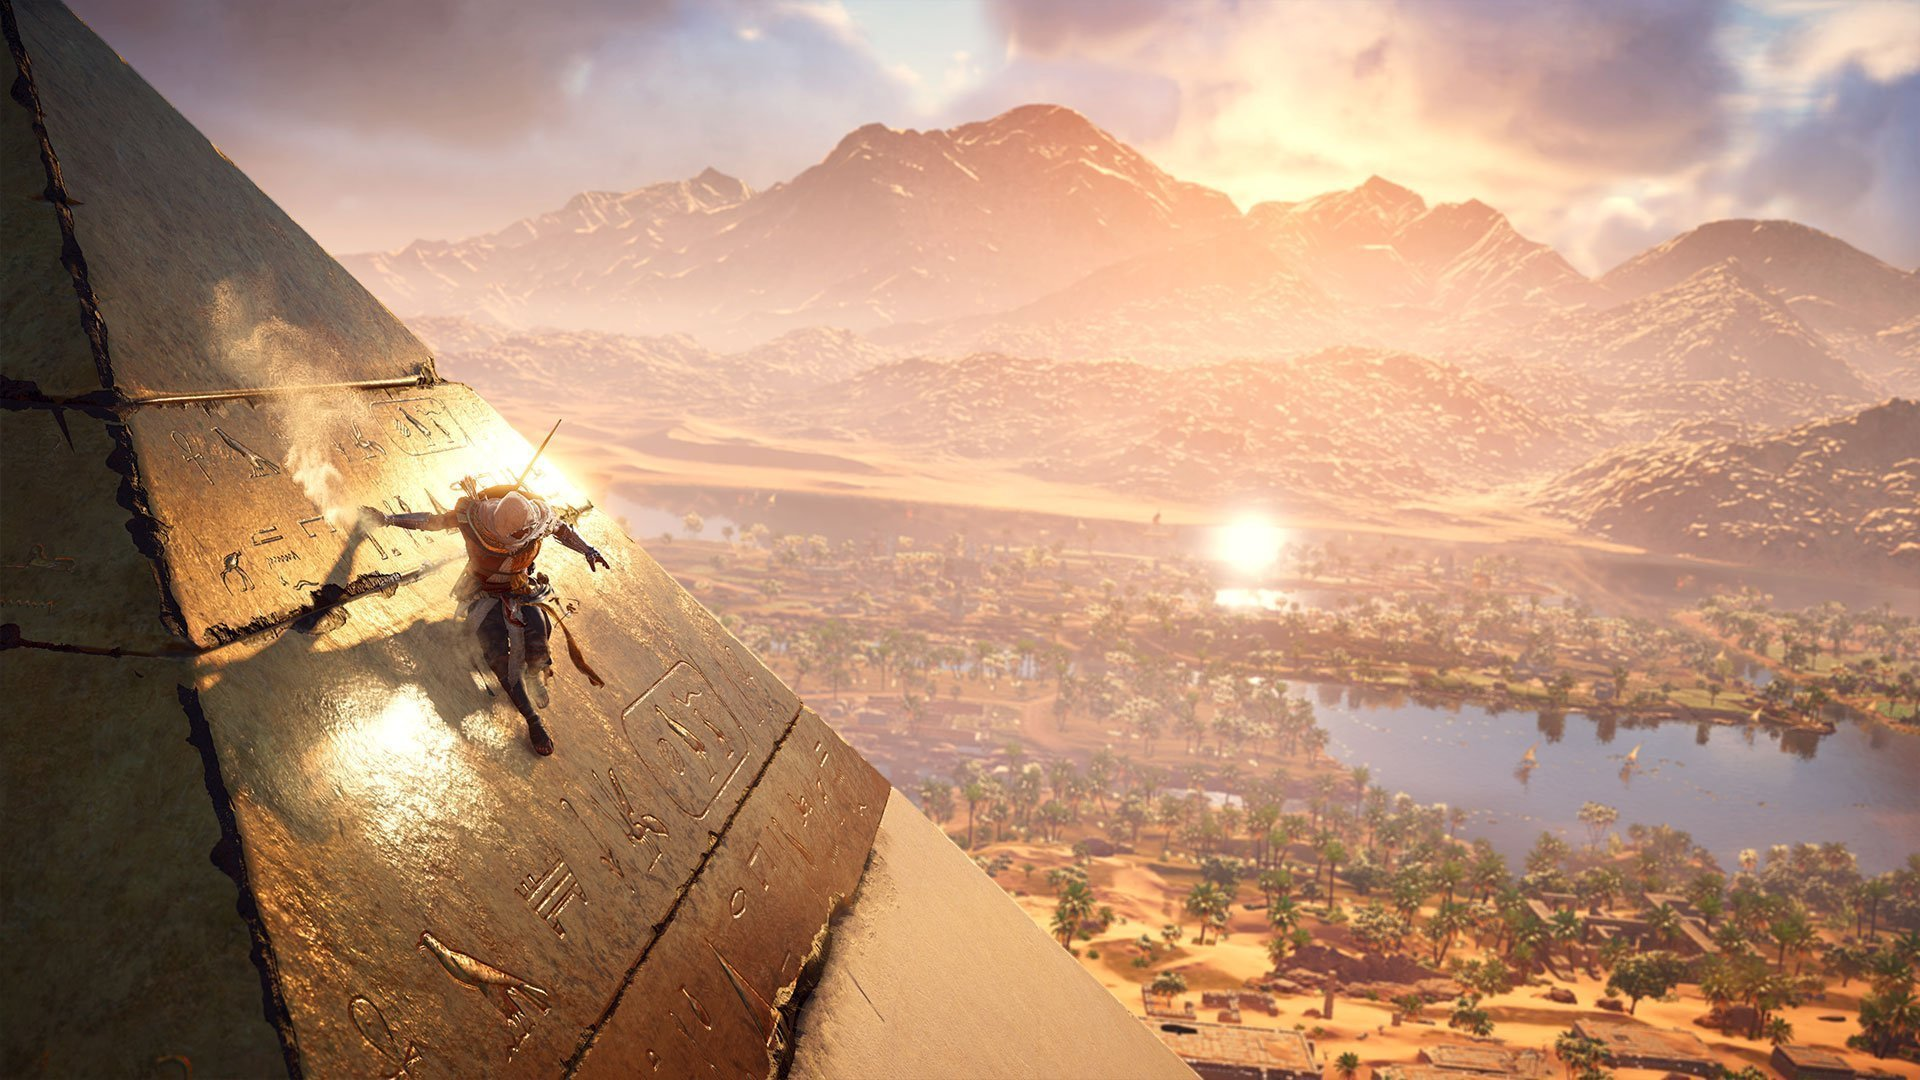 Fotogrametria y realismo en videojuegos assassins creed origins